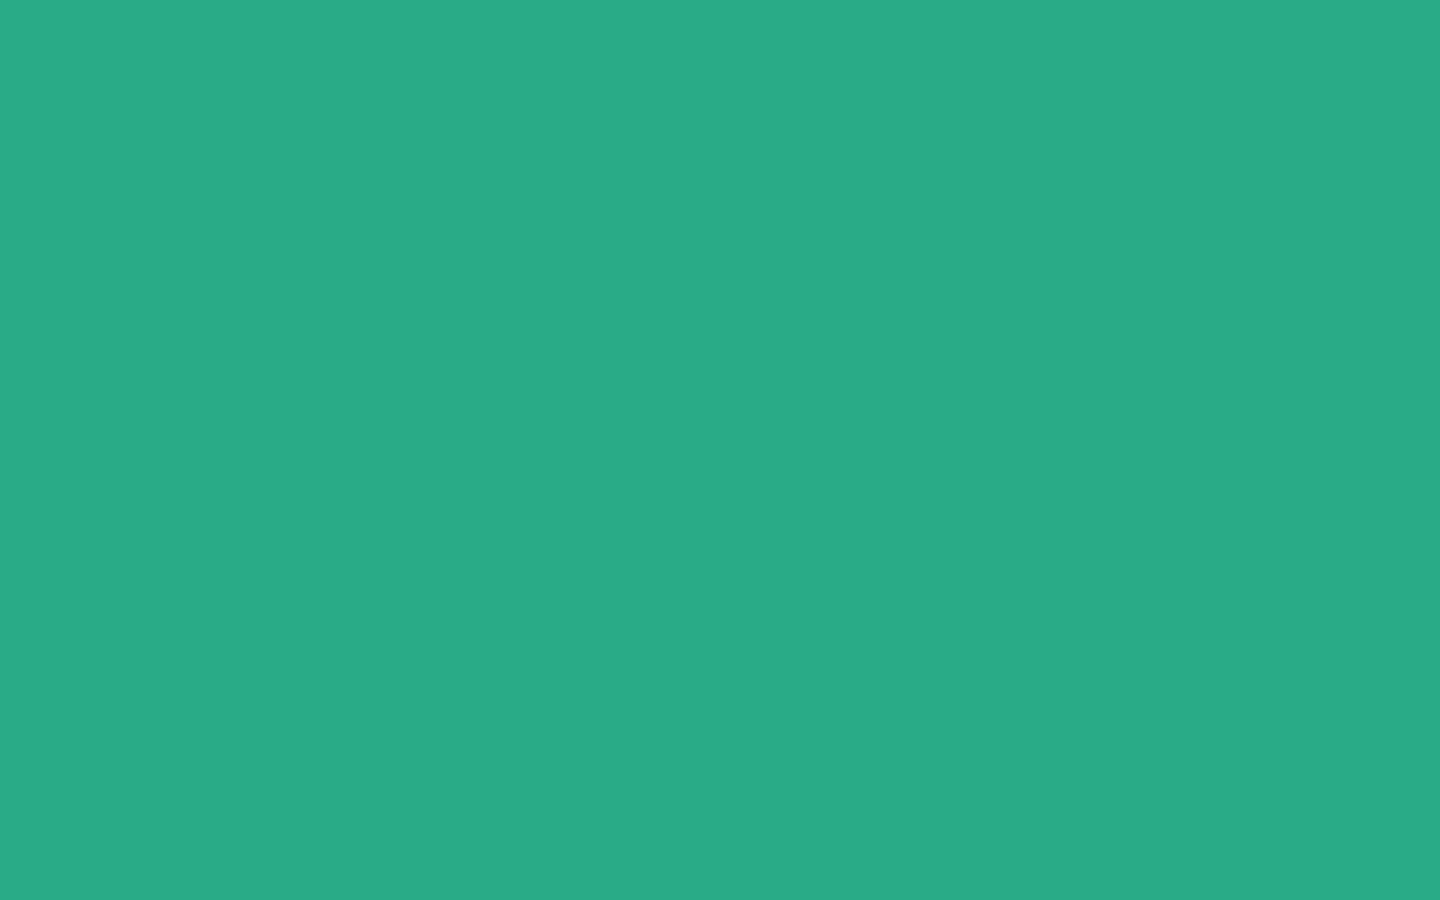 1440x900 Jungle Green Solid Color Background